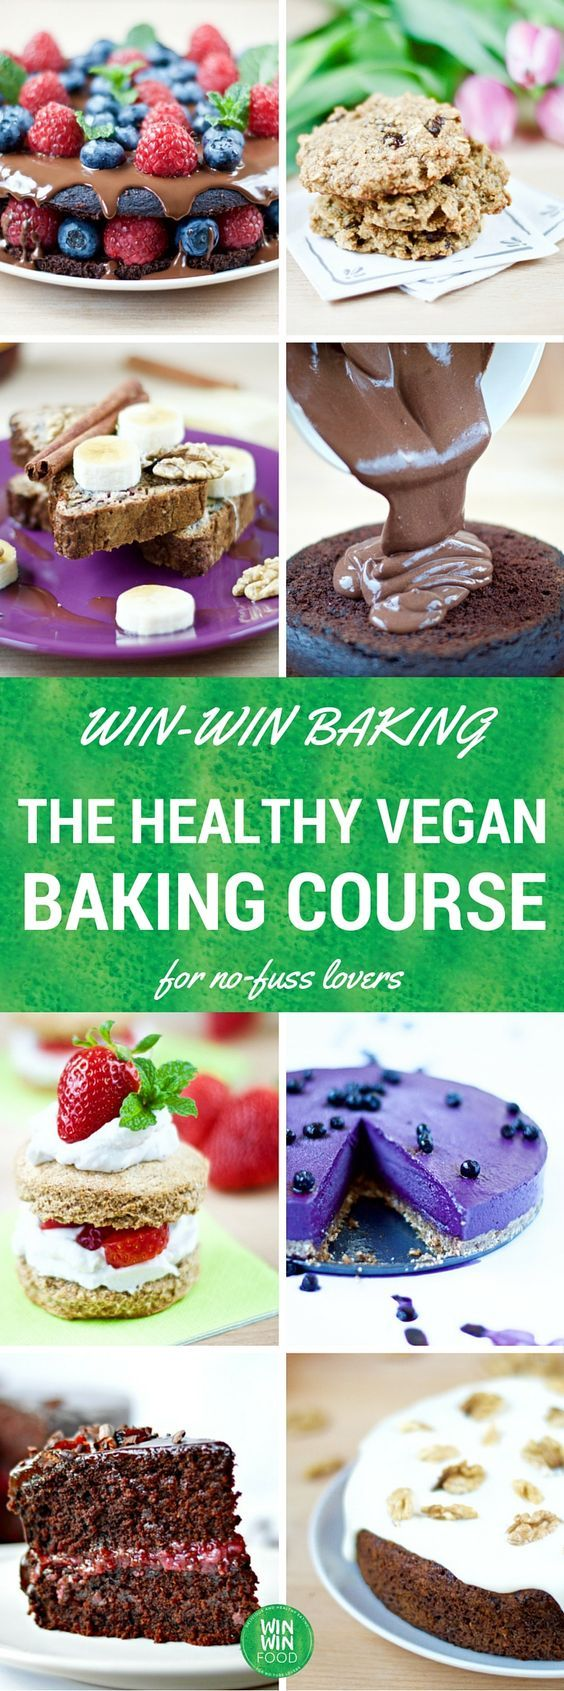 Master the art of creating delicious but guilt-free desserts with this exclusive online course! In just 7 weeks, I'll walk you through all aspects of #healthy #vegan baking made simple. Click on the pin for full details.